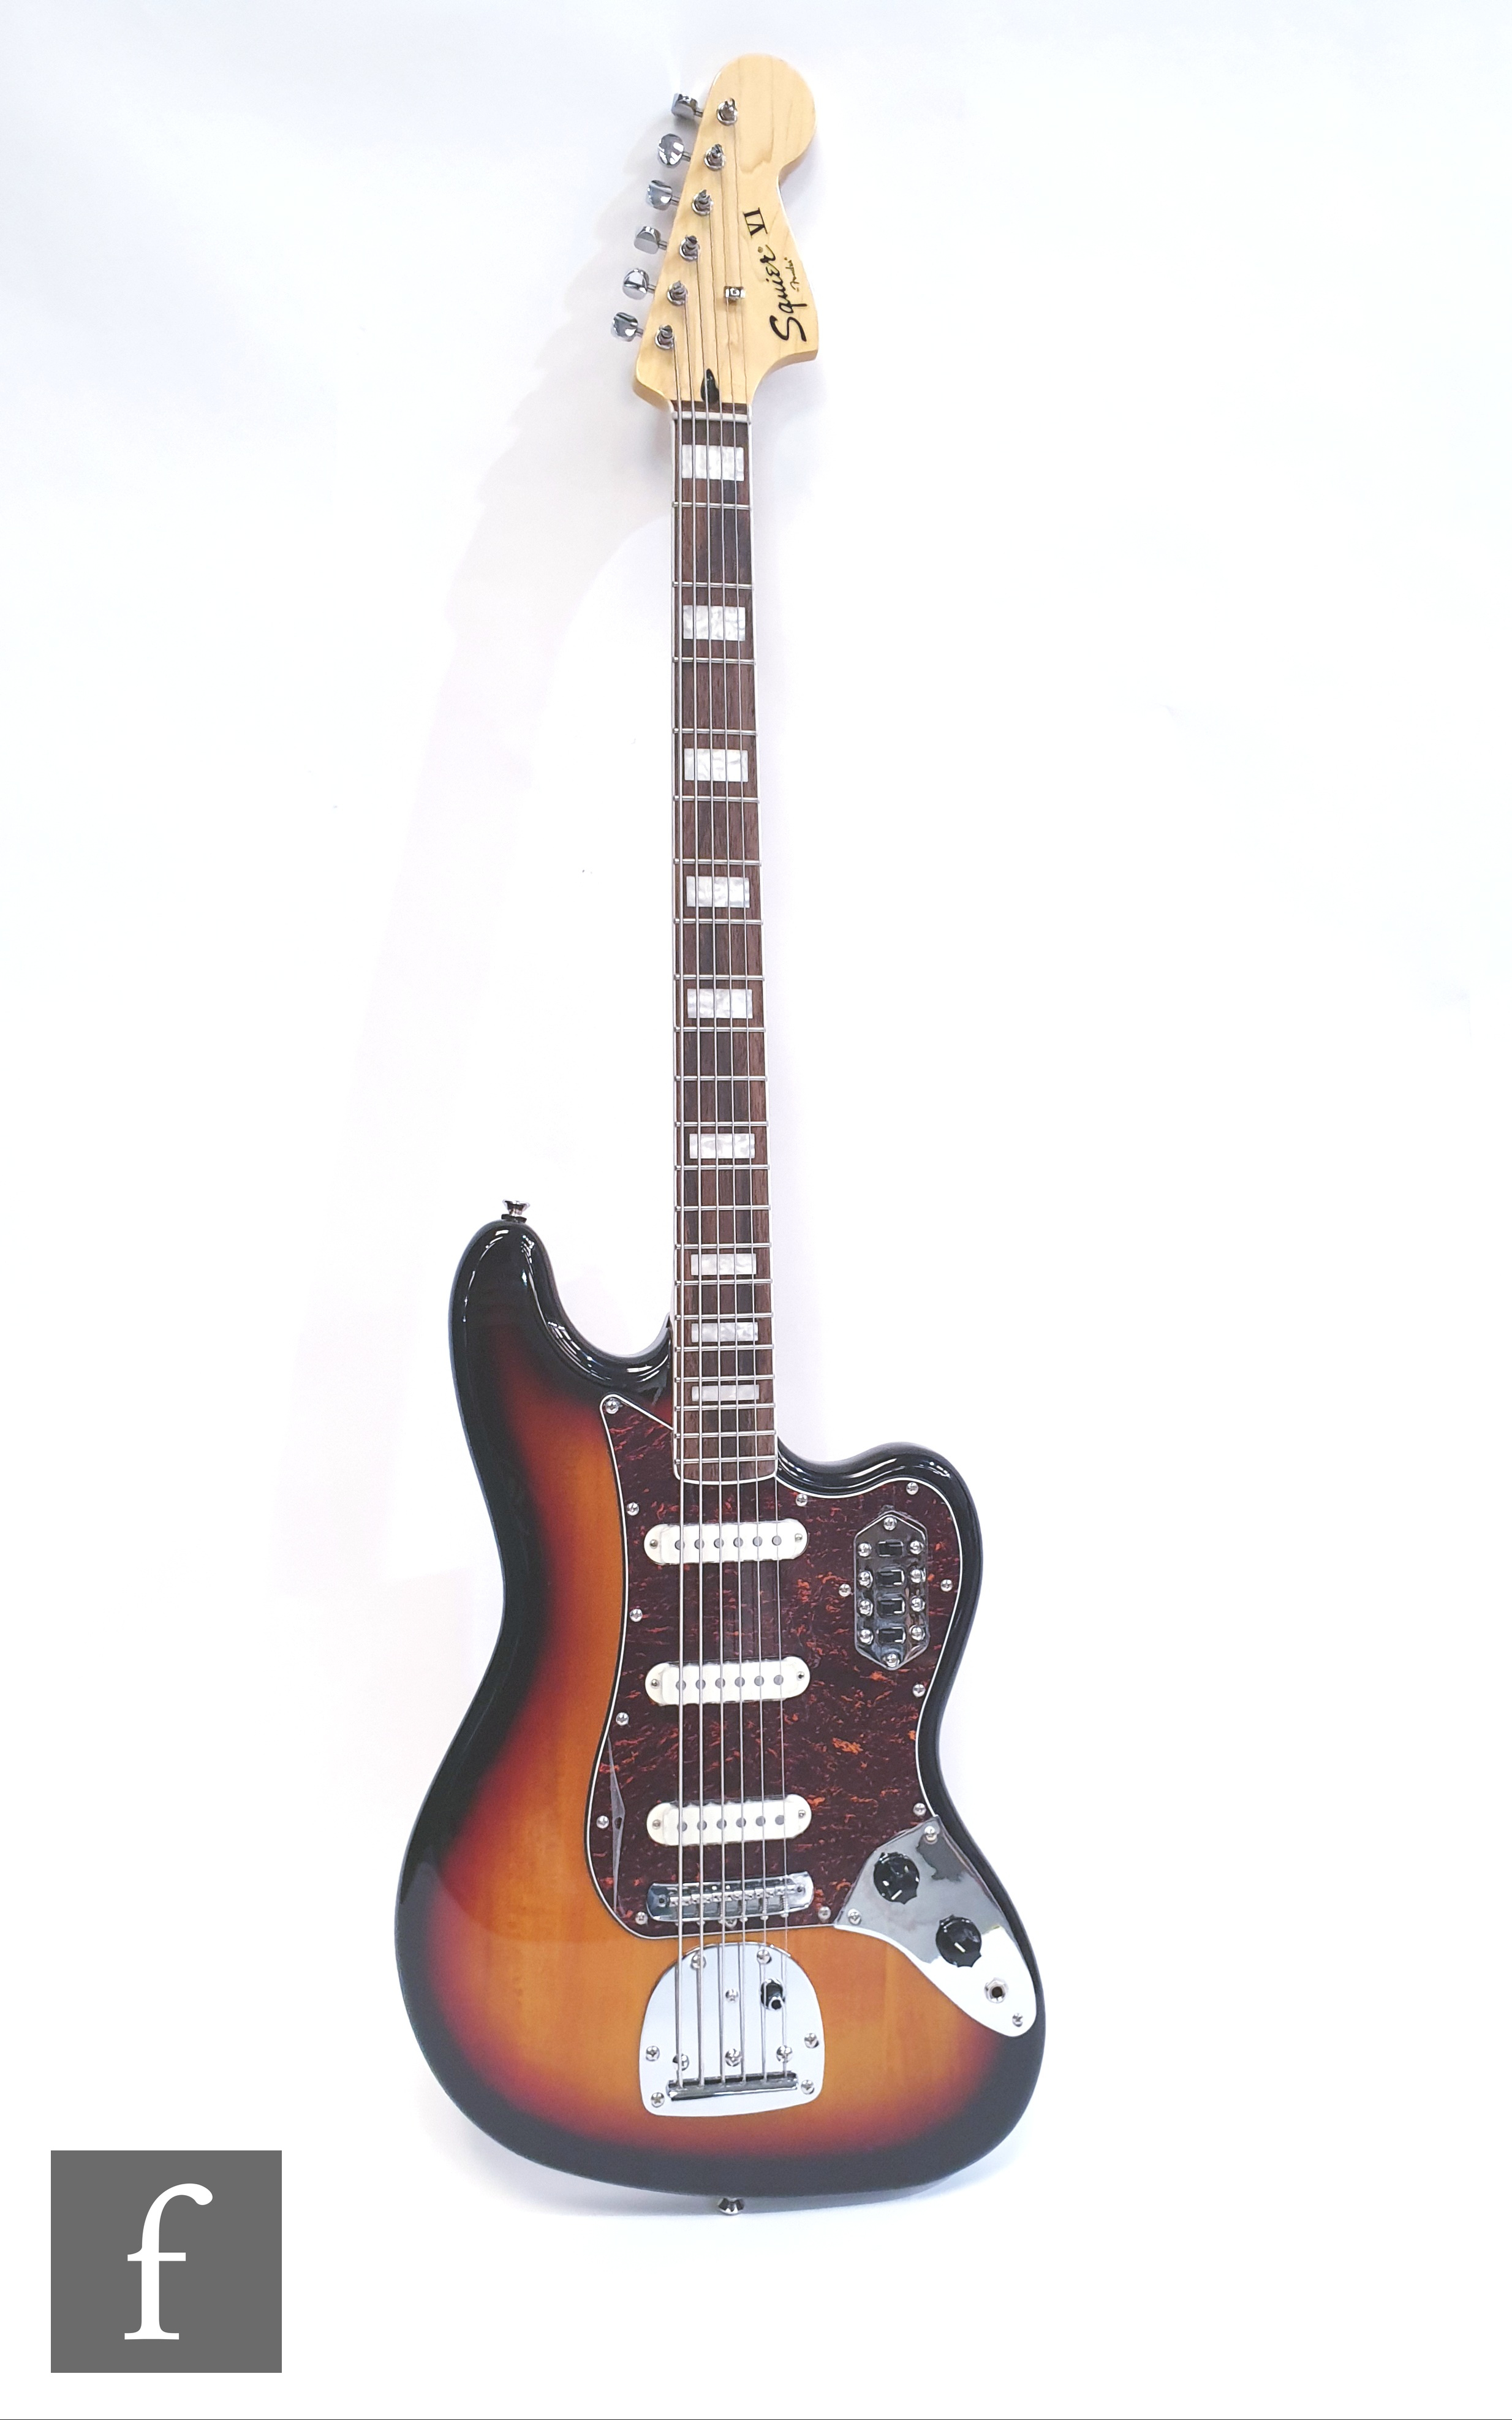 A Squire VI by Fender electric guitar, serial number 15208800, made in Indonesia, sunburst finish,